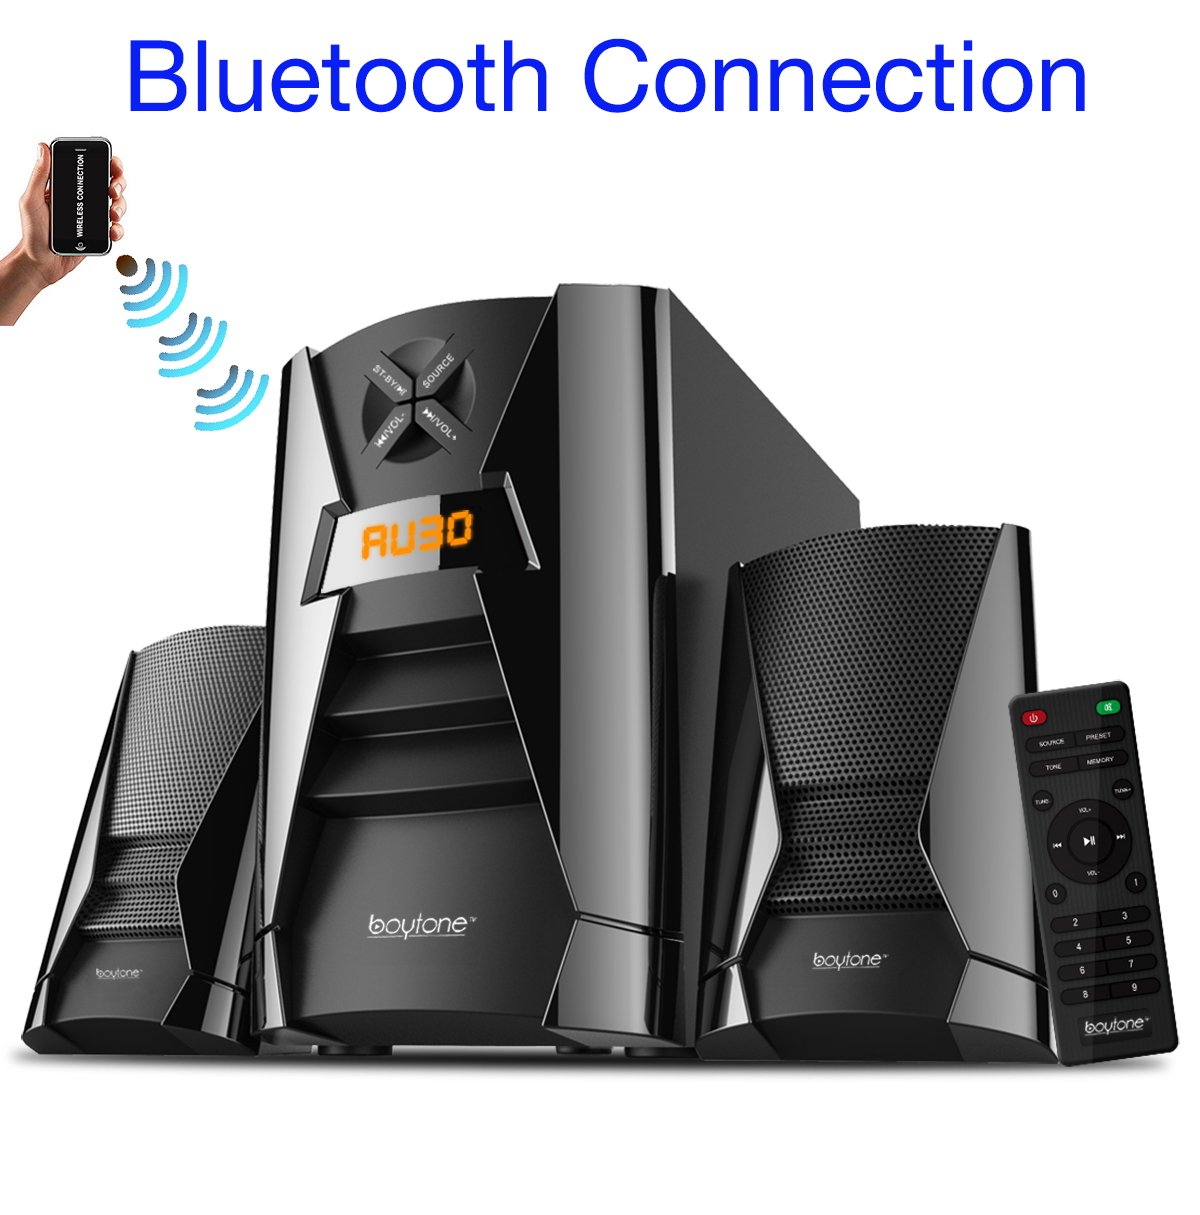 Boytone BT-222F, Wireless Bluetooth 2.1 Multimedia 40 watts, Powerful Bass System with FM Radio, Remote Control, Aux Port, USB, SD Slot, for Phones, Tablets, Music and Home Theater Movies by Boytone